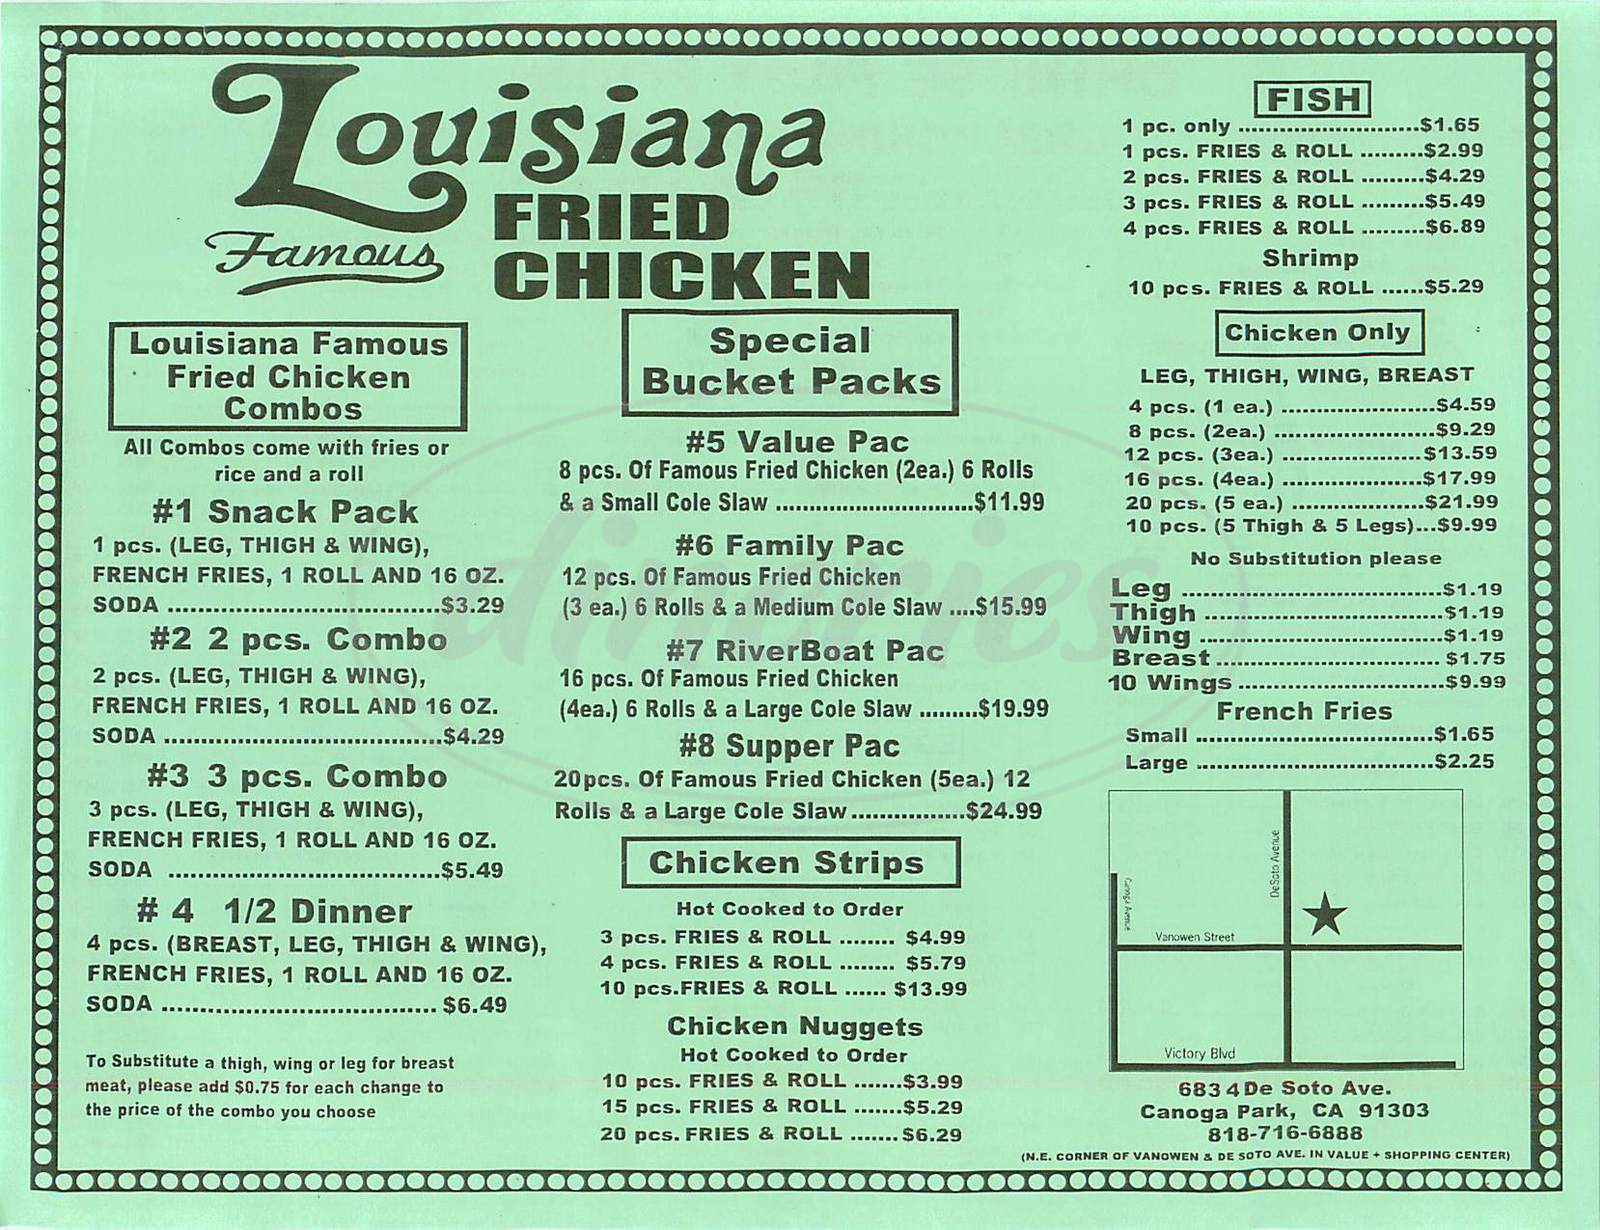 menu for Louisiana Fried Chicken